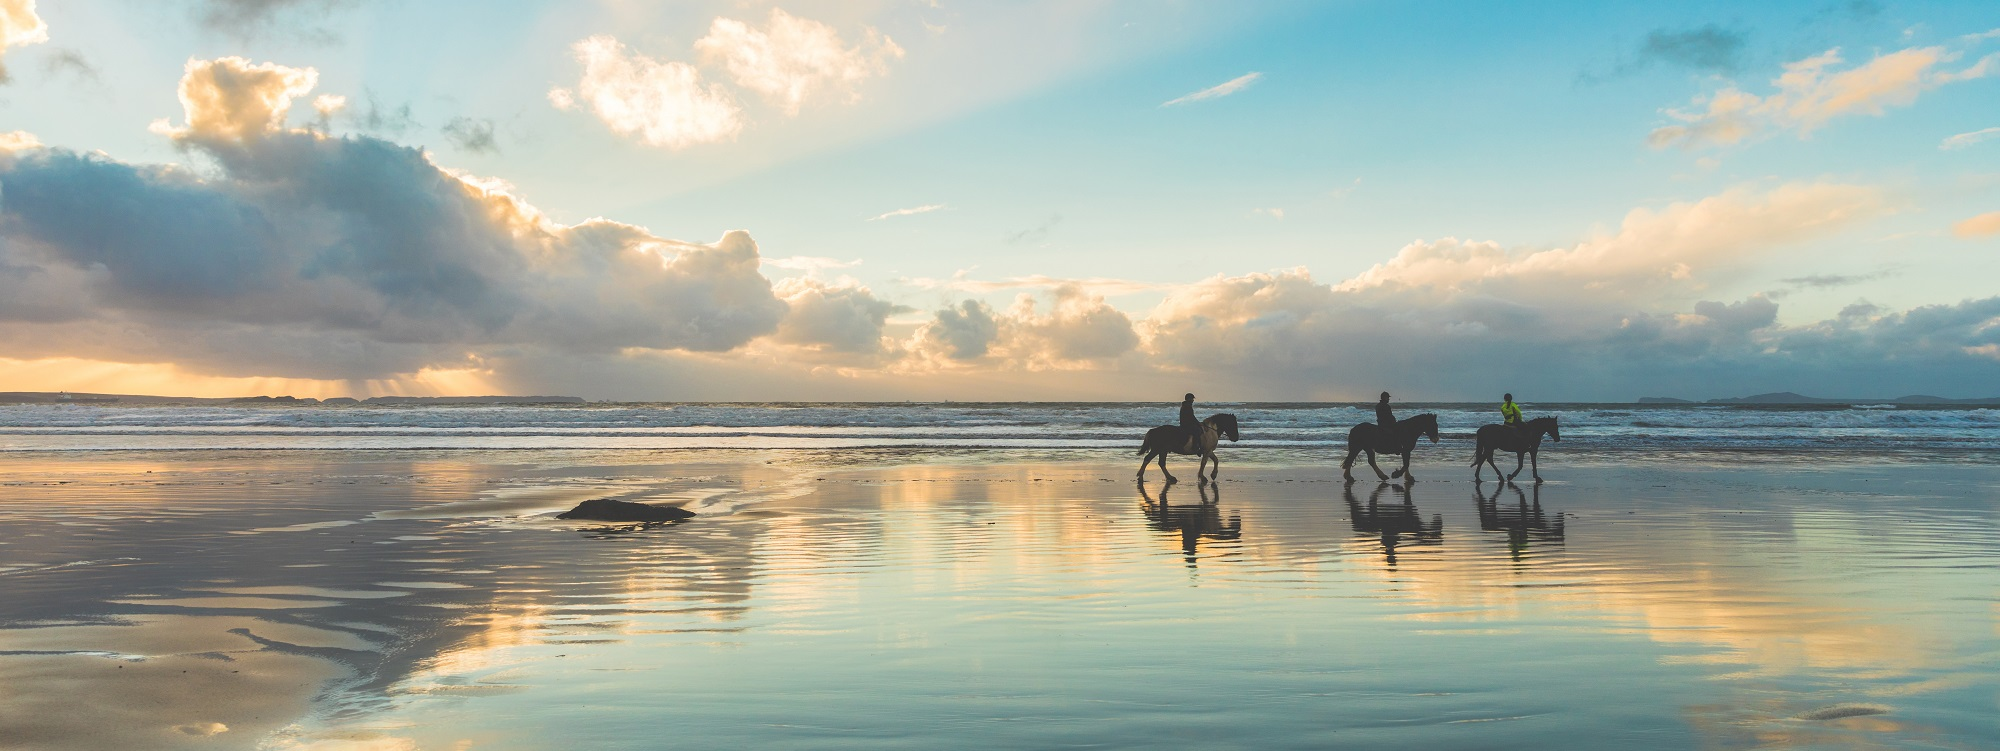 Beach Ride - Great Equine Photograph